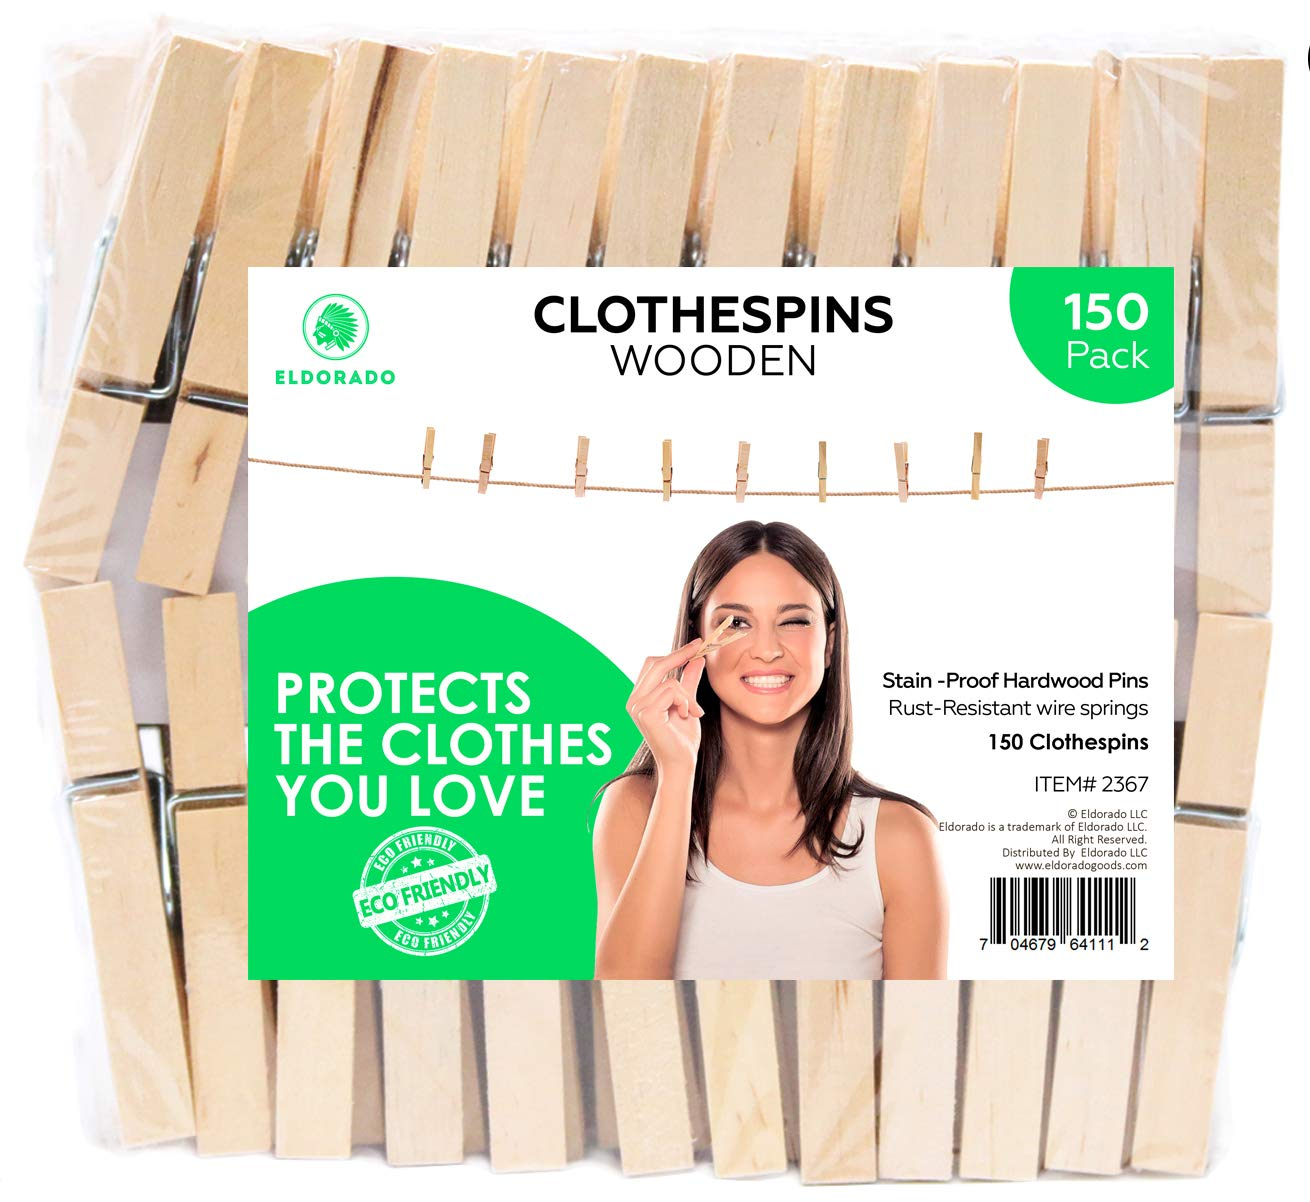 Eldorado Clothespins, Standard Natural Wooden, Stain Proof, 3 inch, 150 Value Pack, for Multipurpose Everyday Laundry, Clothes, Towels, Craft, Photos, Pictures, Decor, Baby Shower, Art Wall